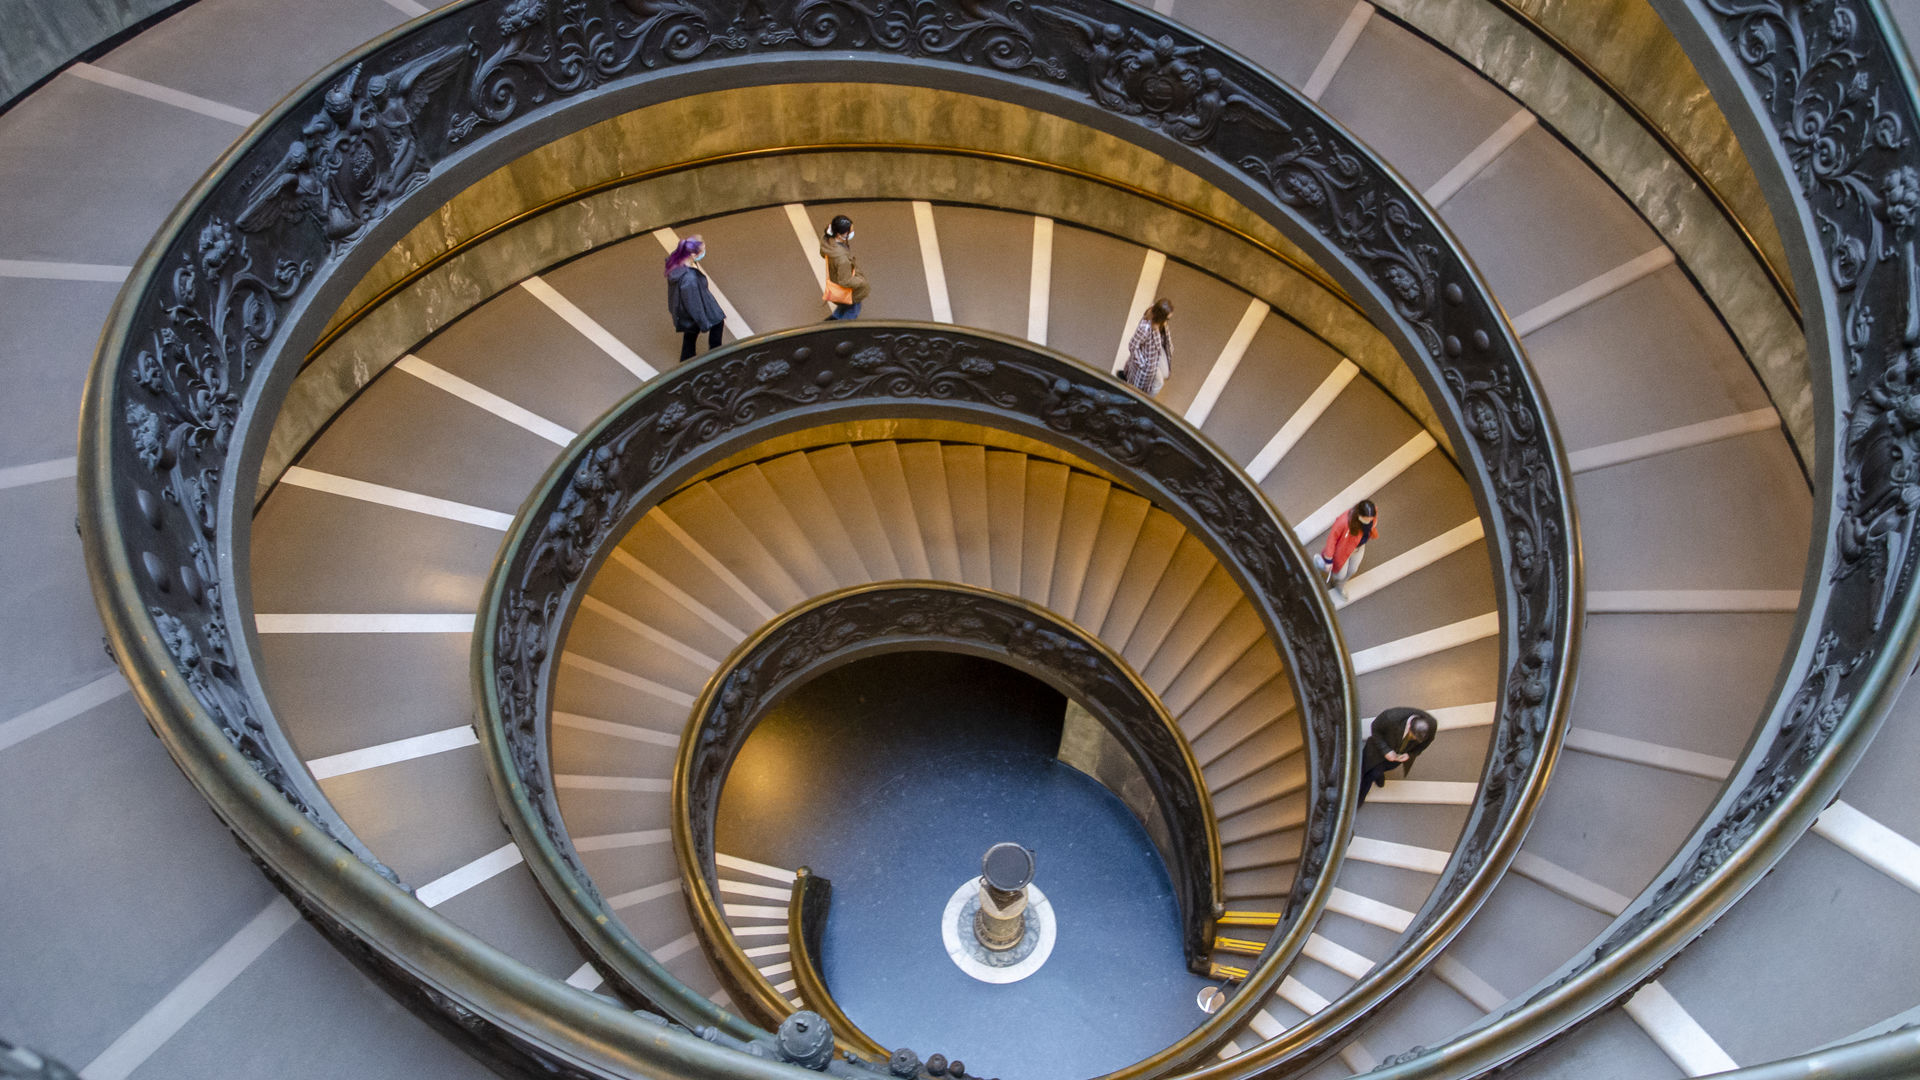 Students walking down the spiral steps at the Vatican Museums.